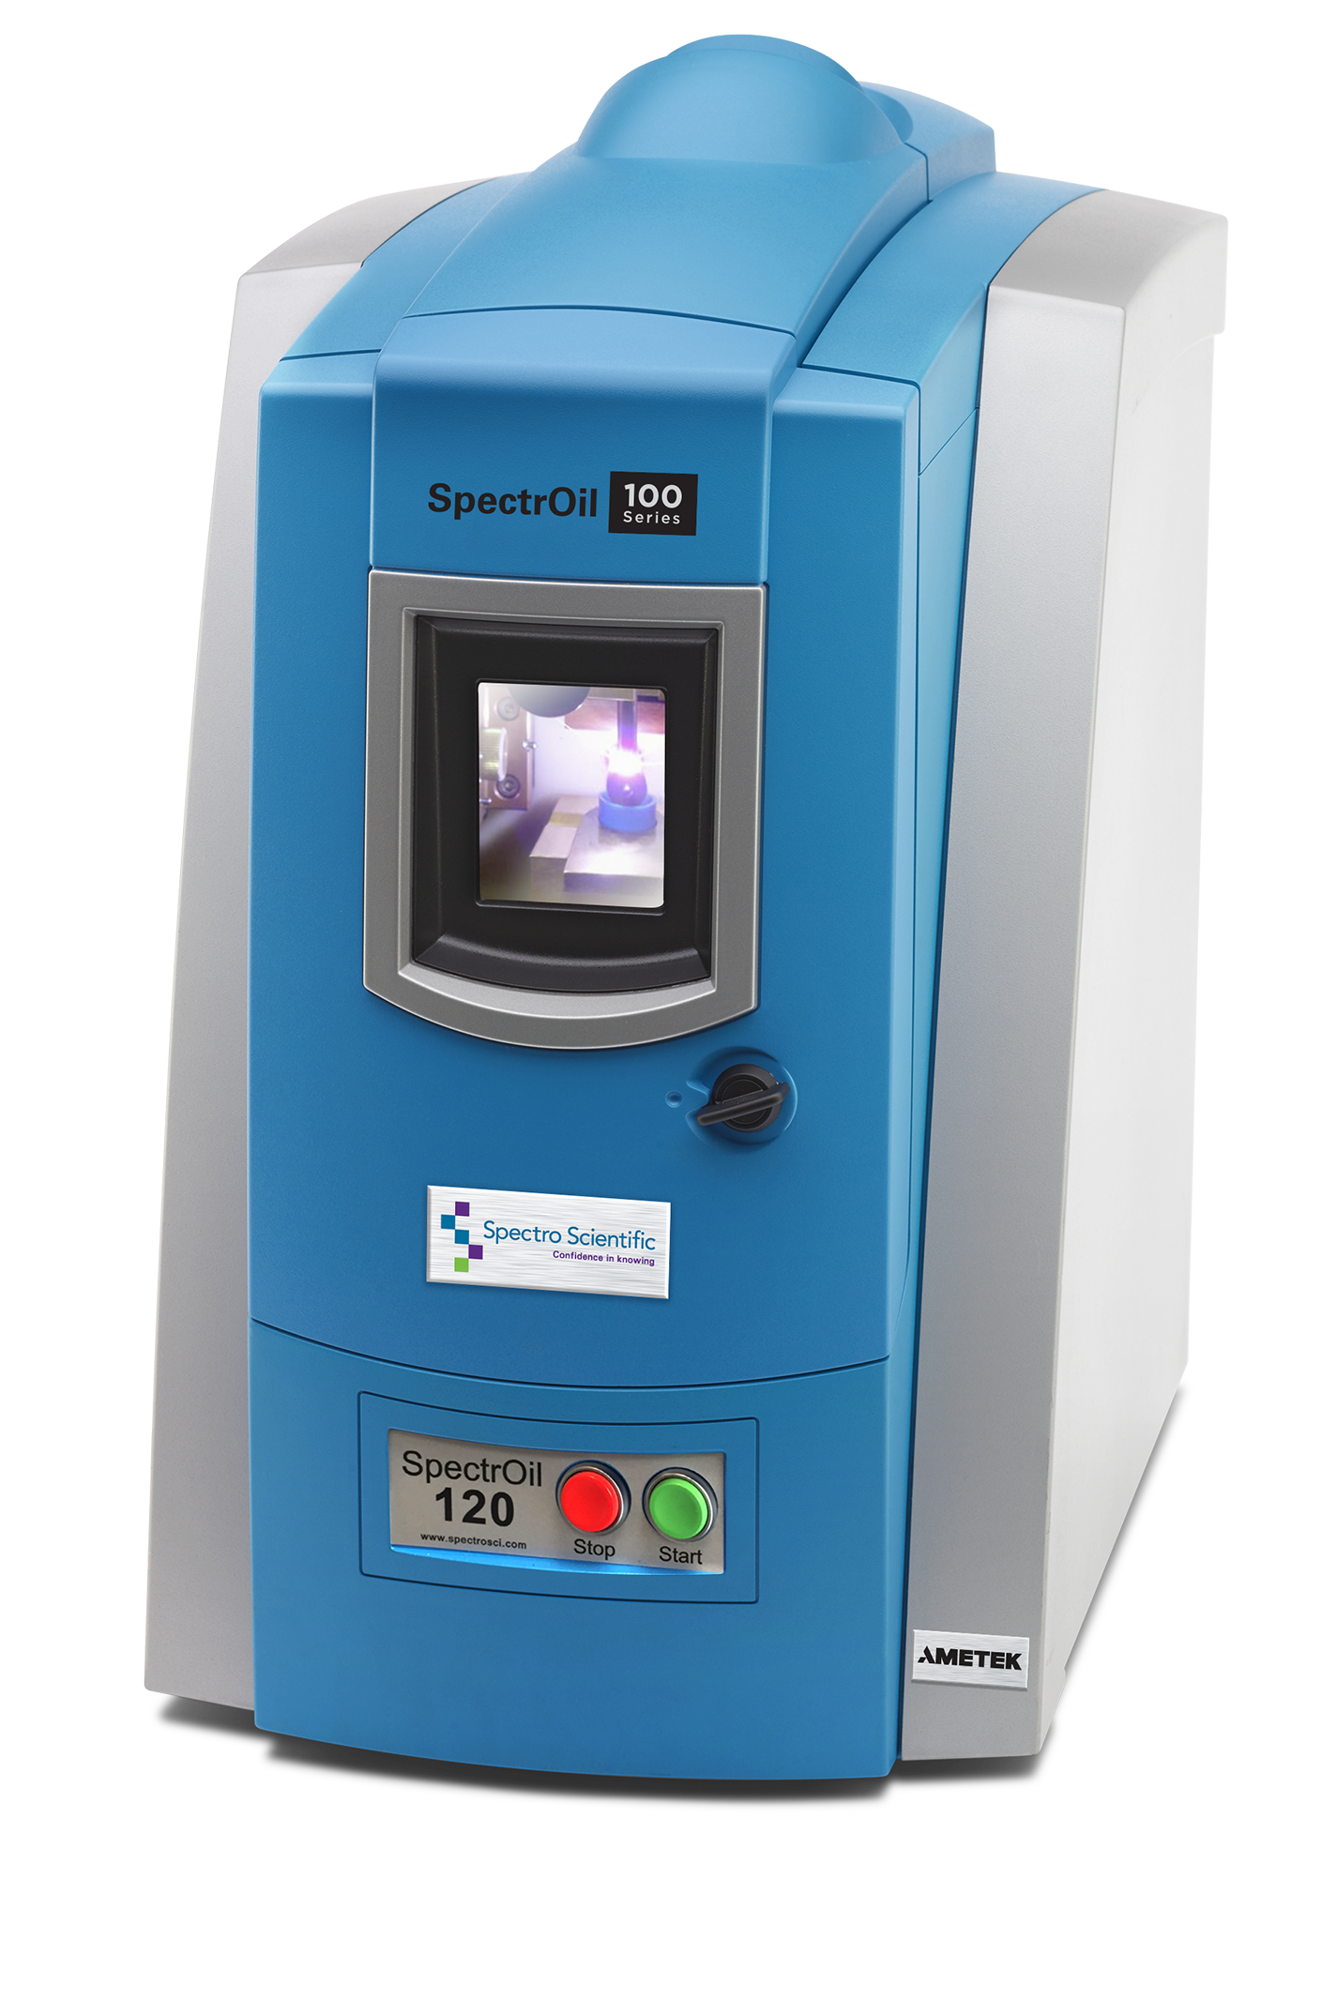 SpectrOil 100 Series elemental analyzer